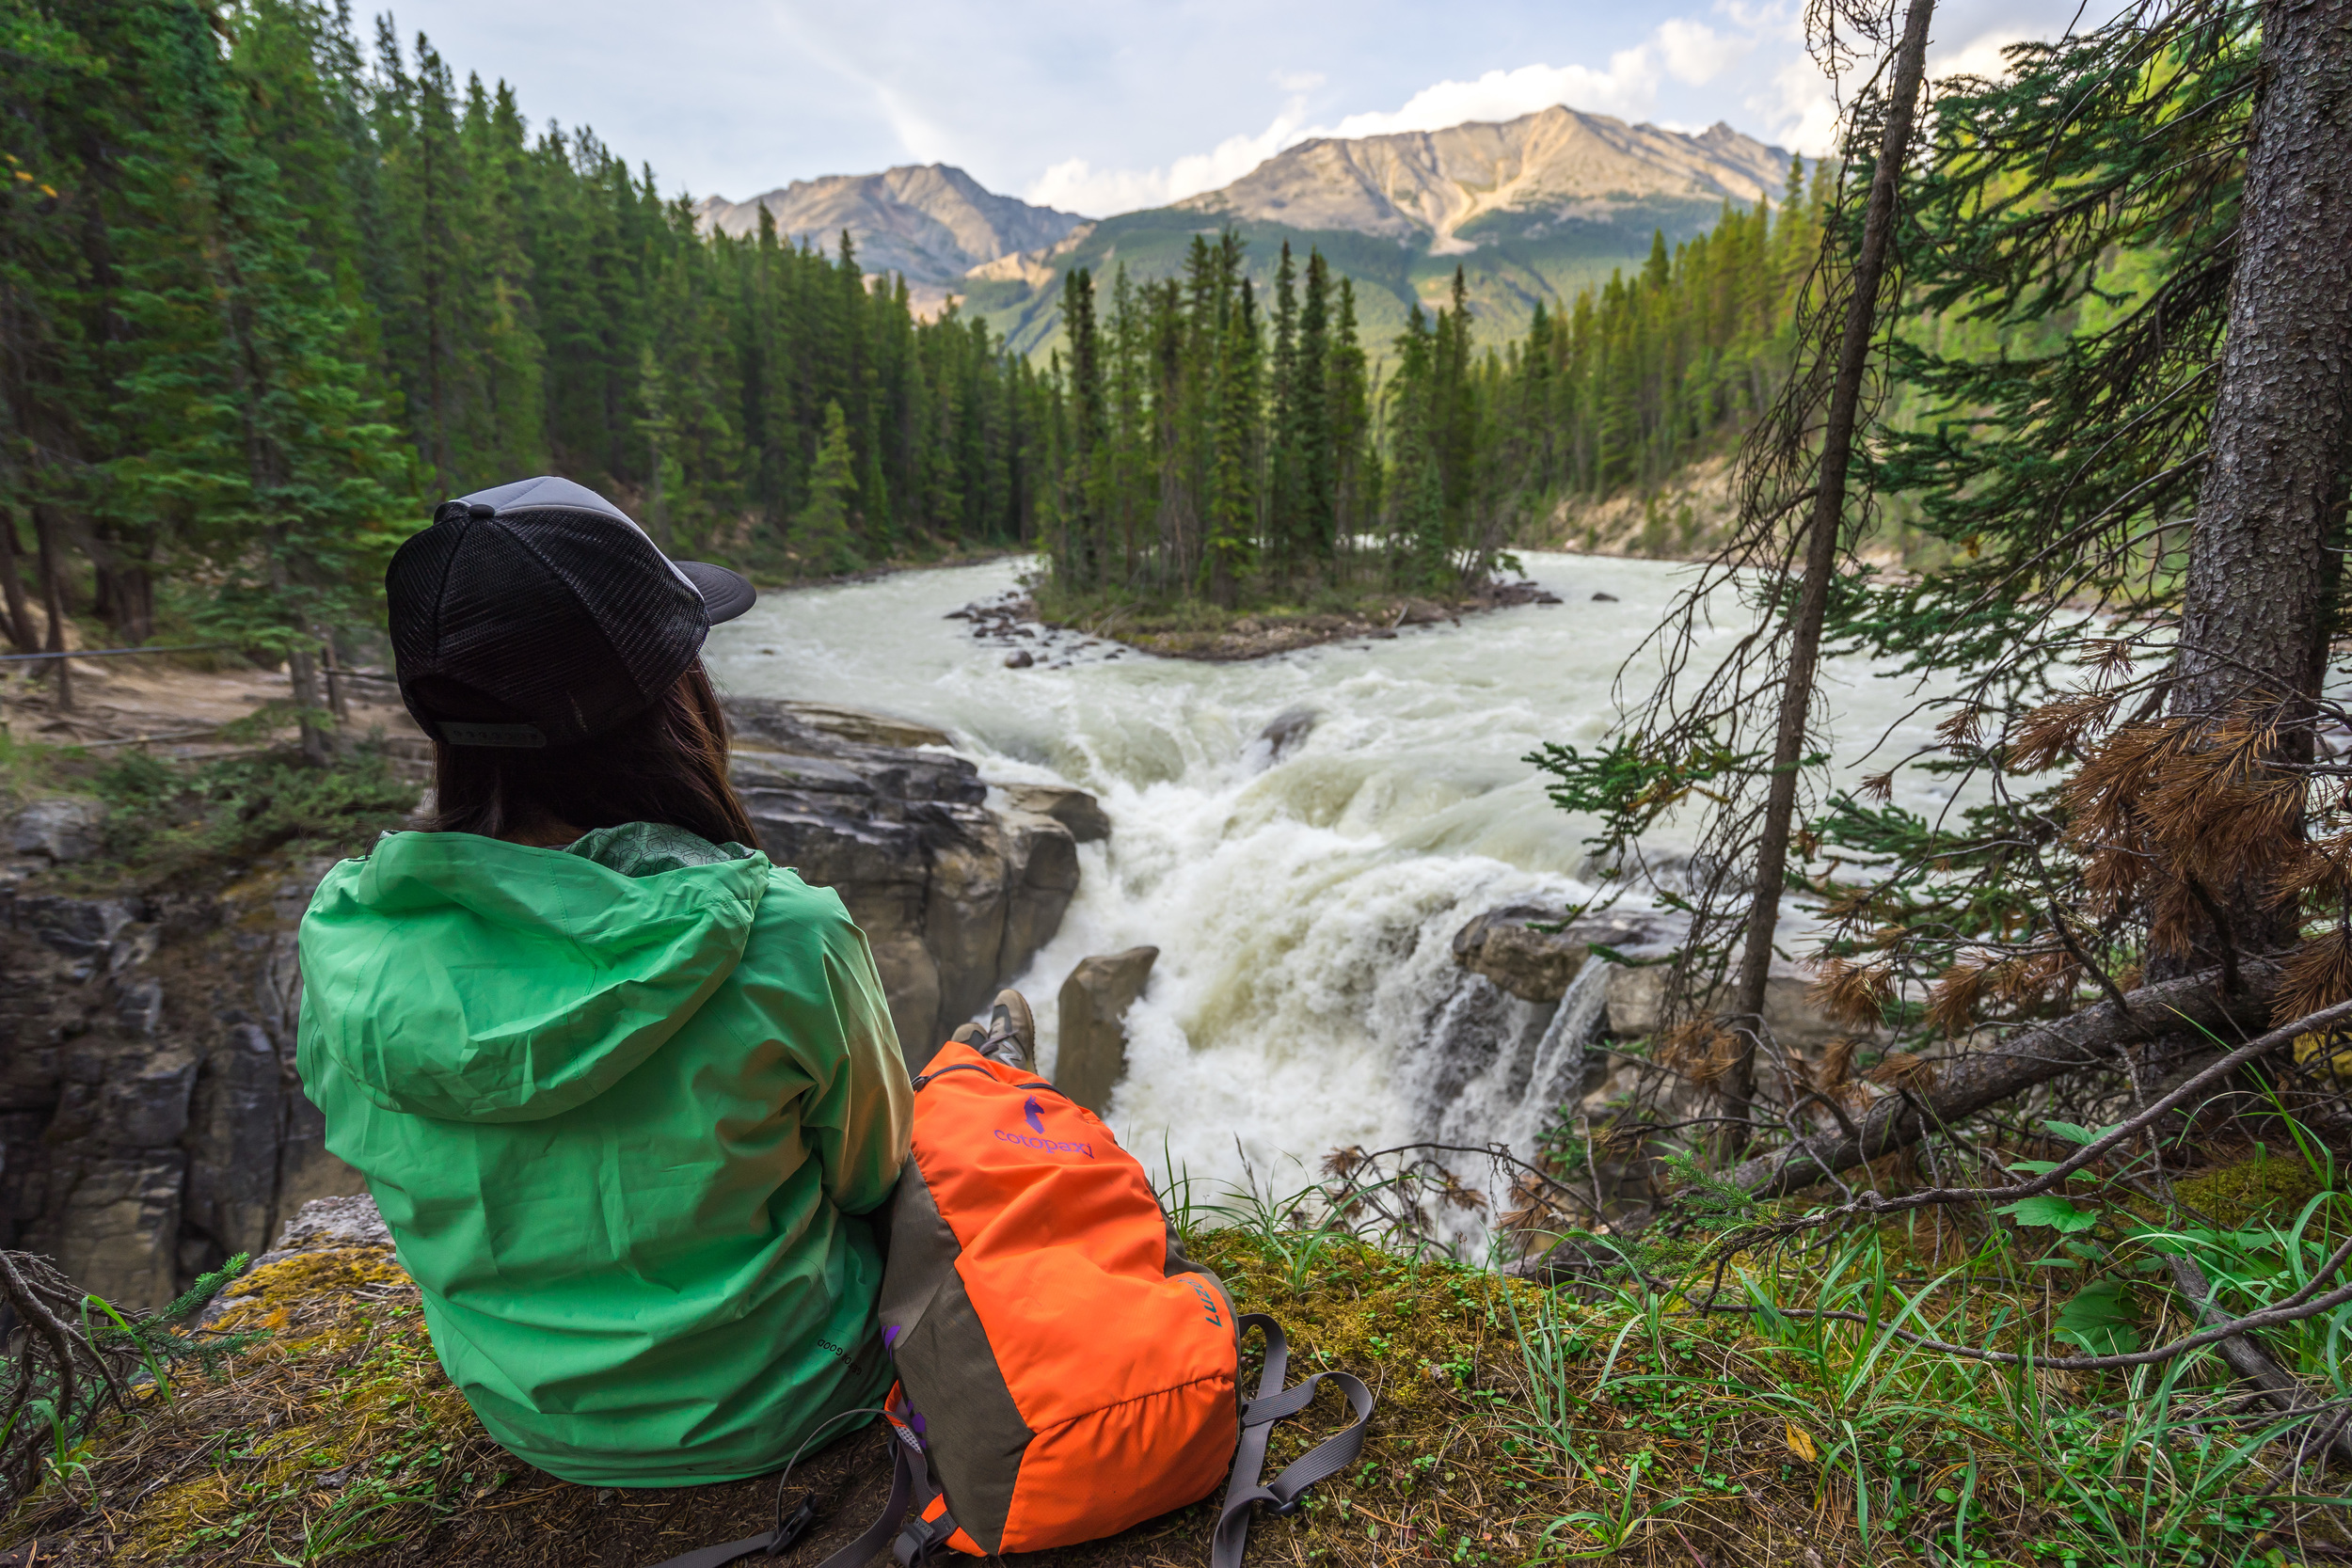 5. Exploring Sunwapta Falls: Mother Nature can leave you speechless sometimes and this is definitely one of those spots. Watching the water rush around the perfectly placed island and crash down the falls just downstream is an experience I'll never forget.